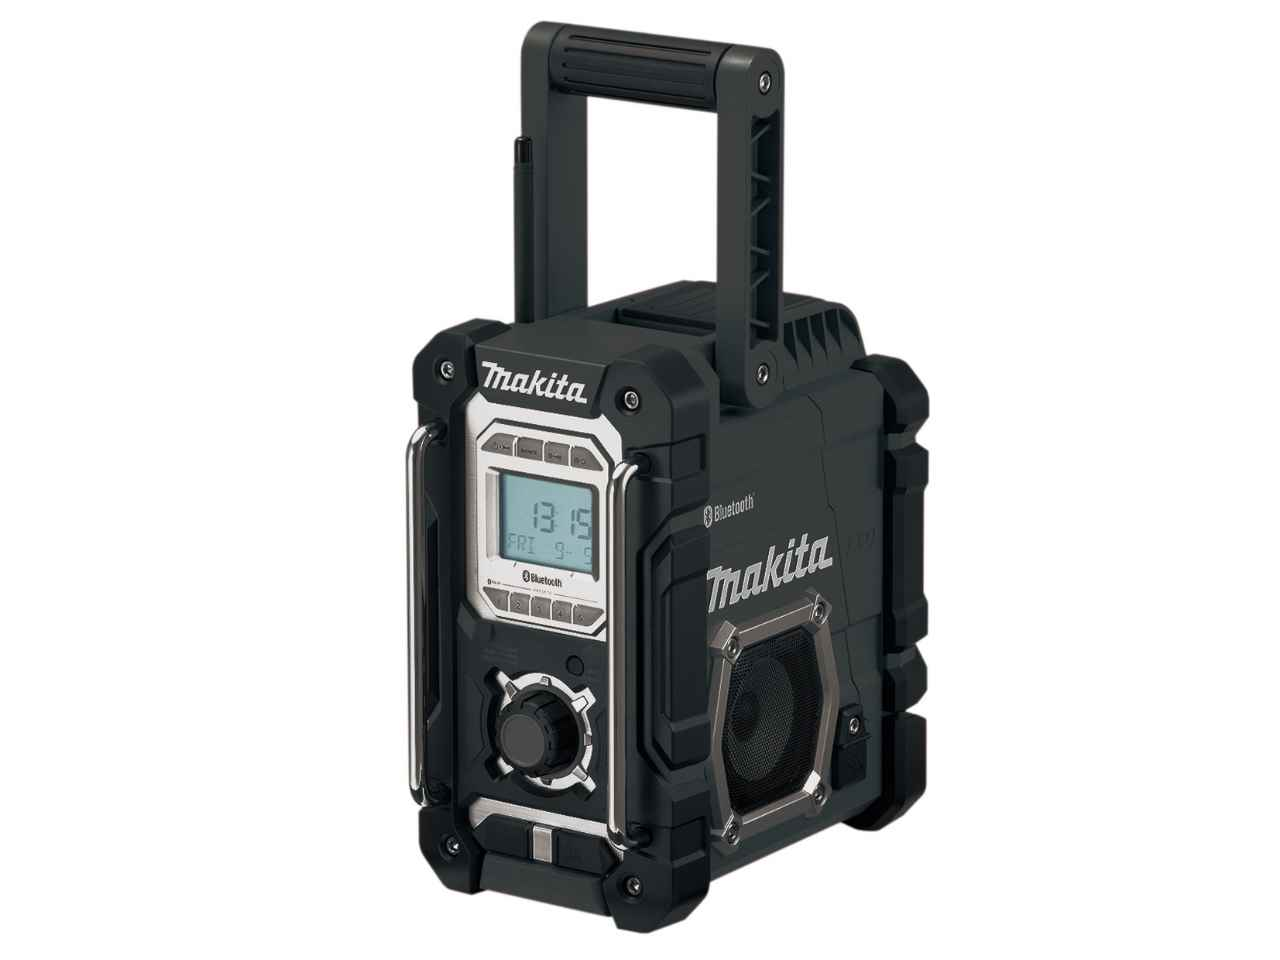 Makita dmr108 job site radio with bluetooth - Radio makita dmr108 ...